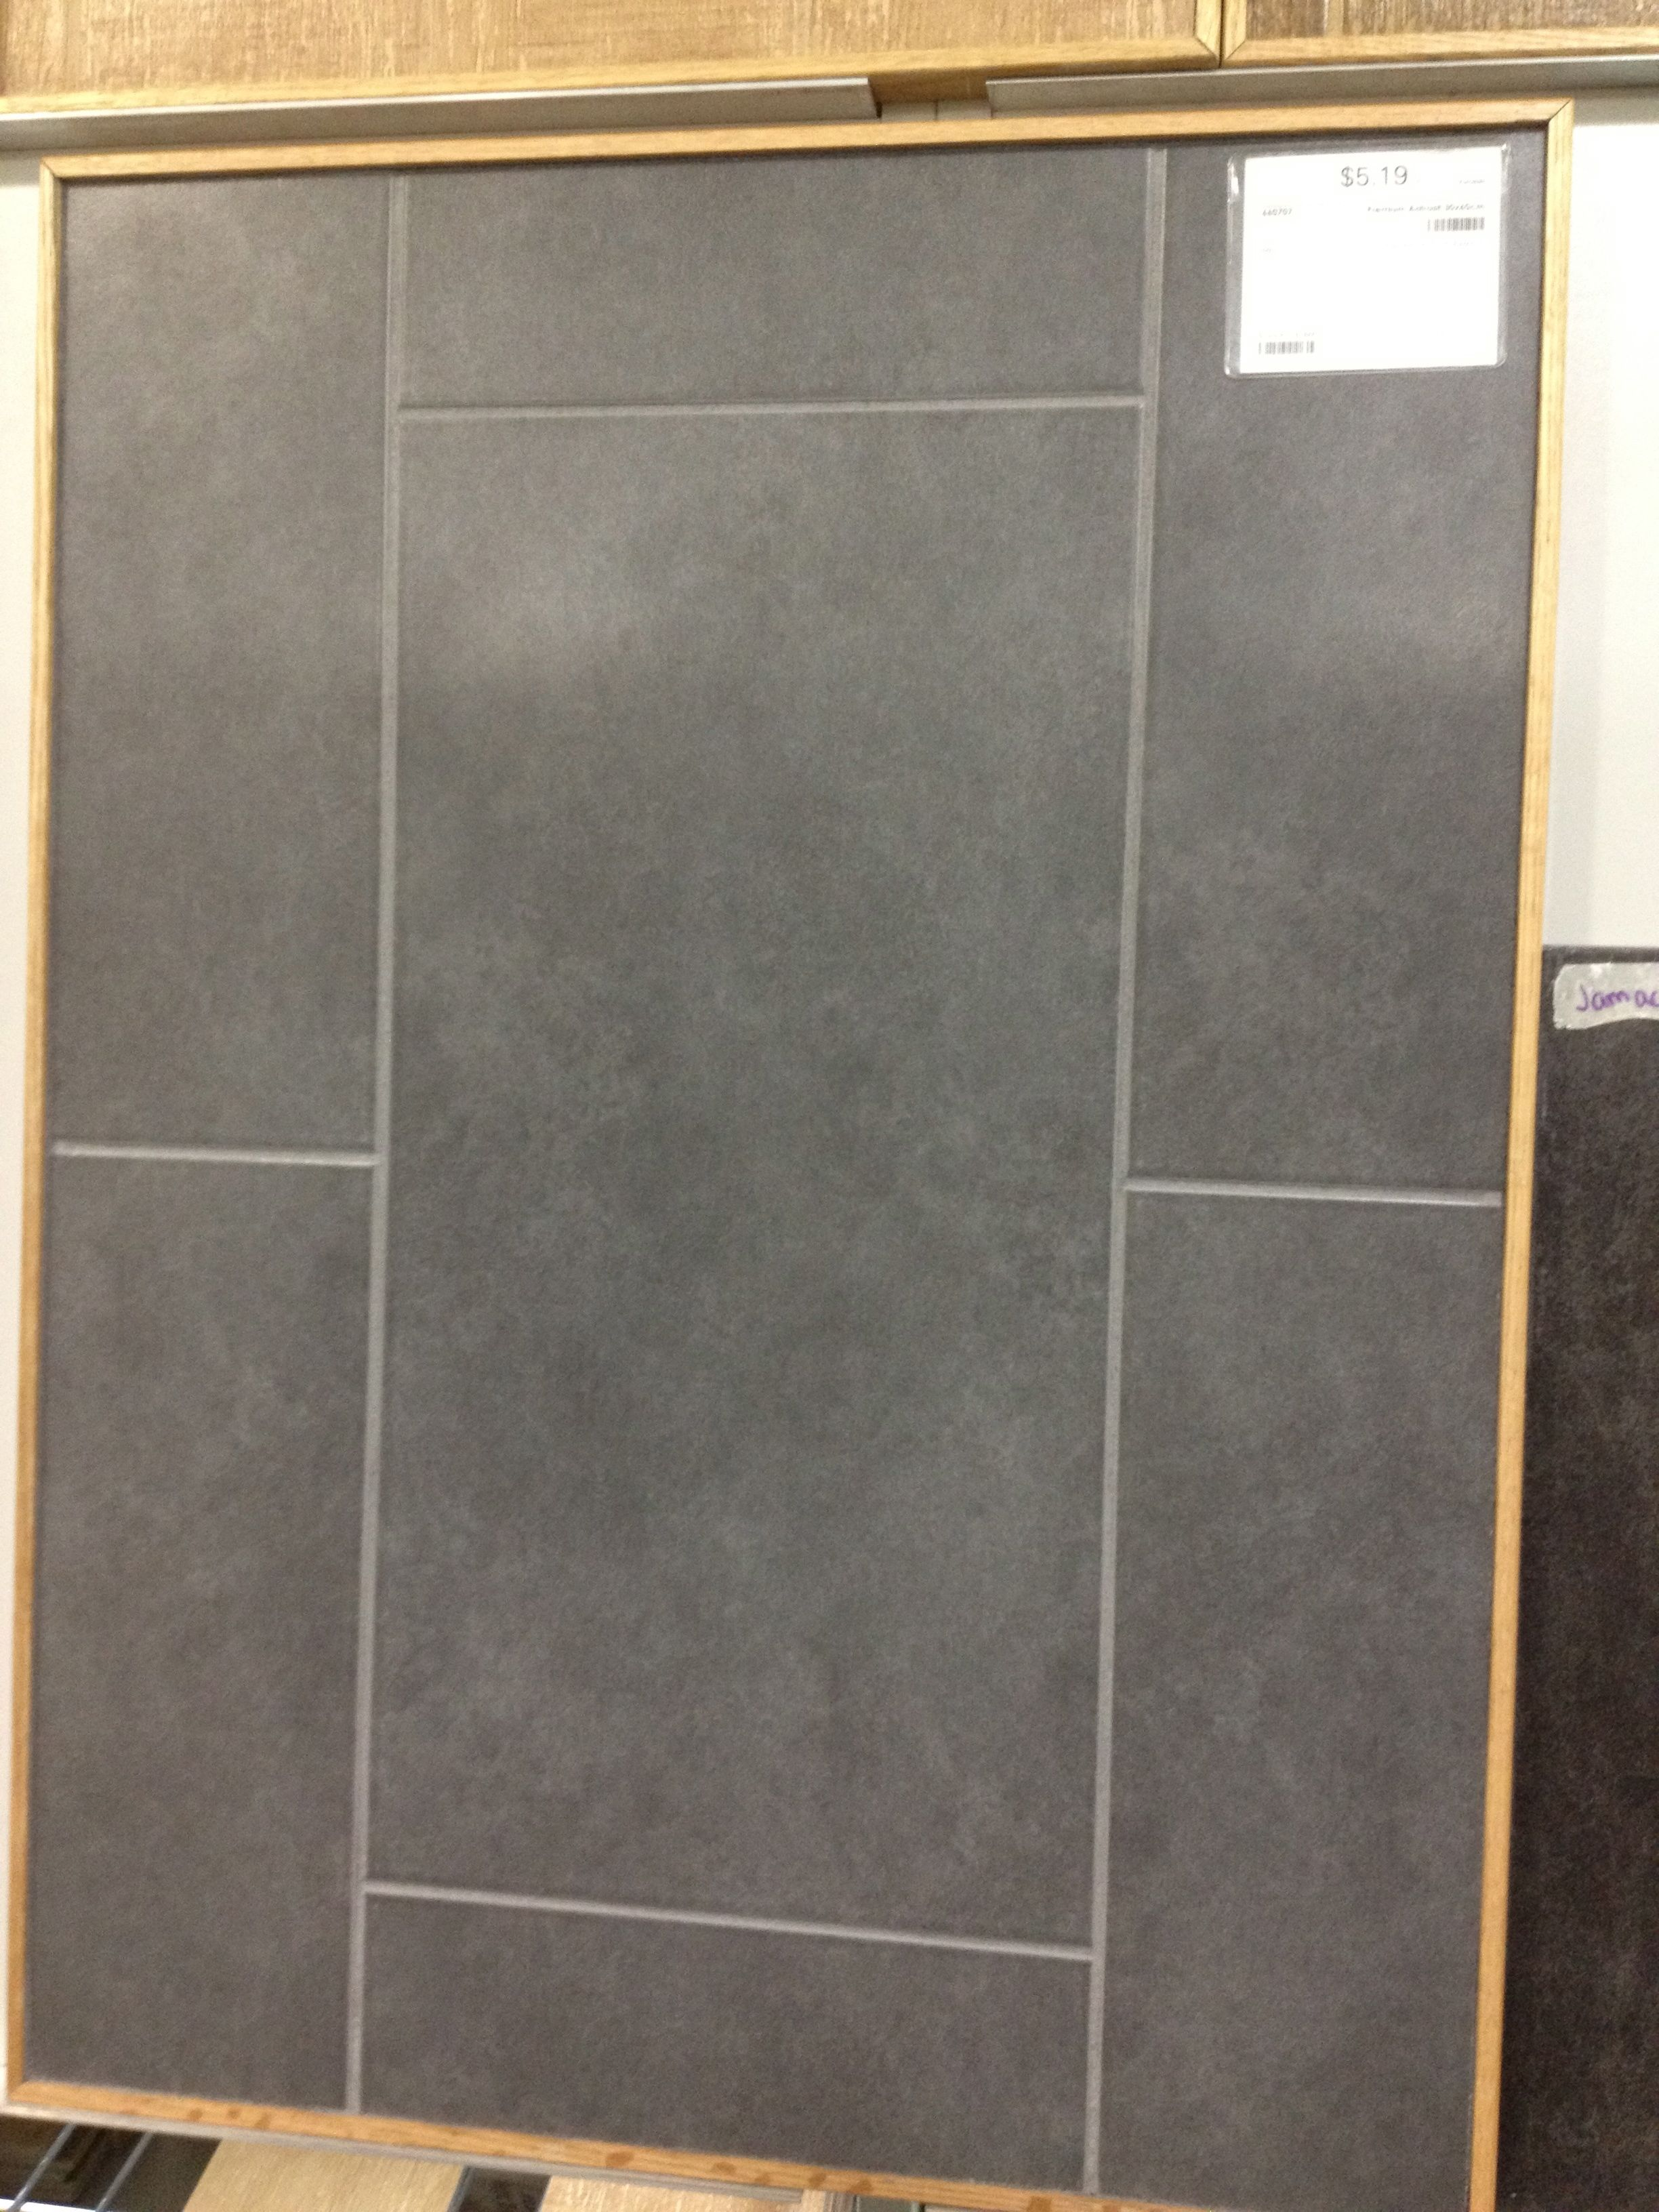 Premium antrasit floor tile with gray grout laundry room premium antrasit floor tile with gray grout dailygadgetfo Choice Image